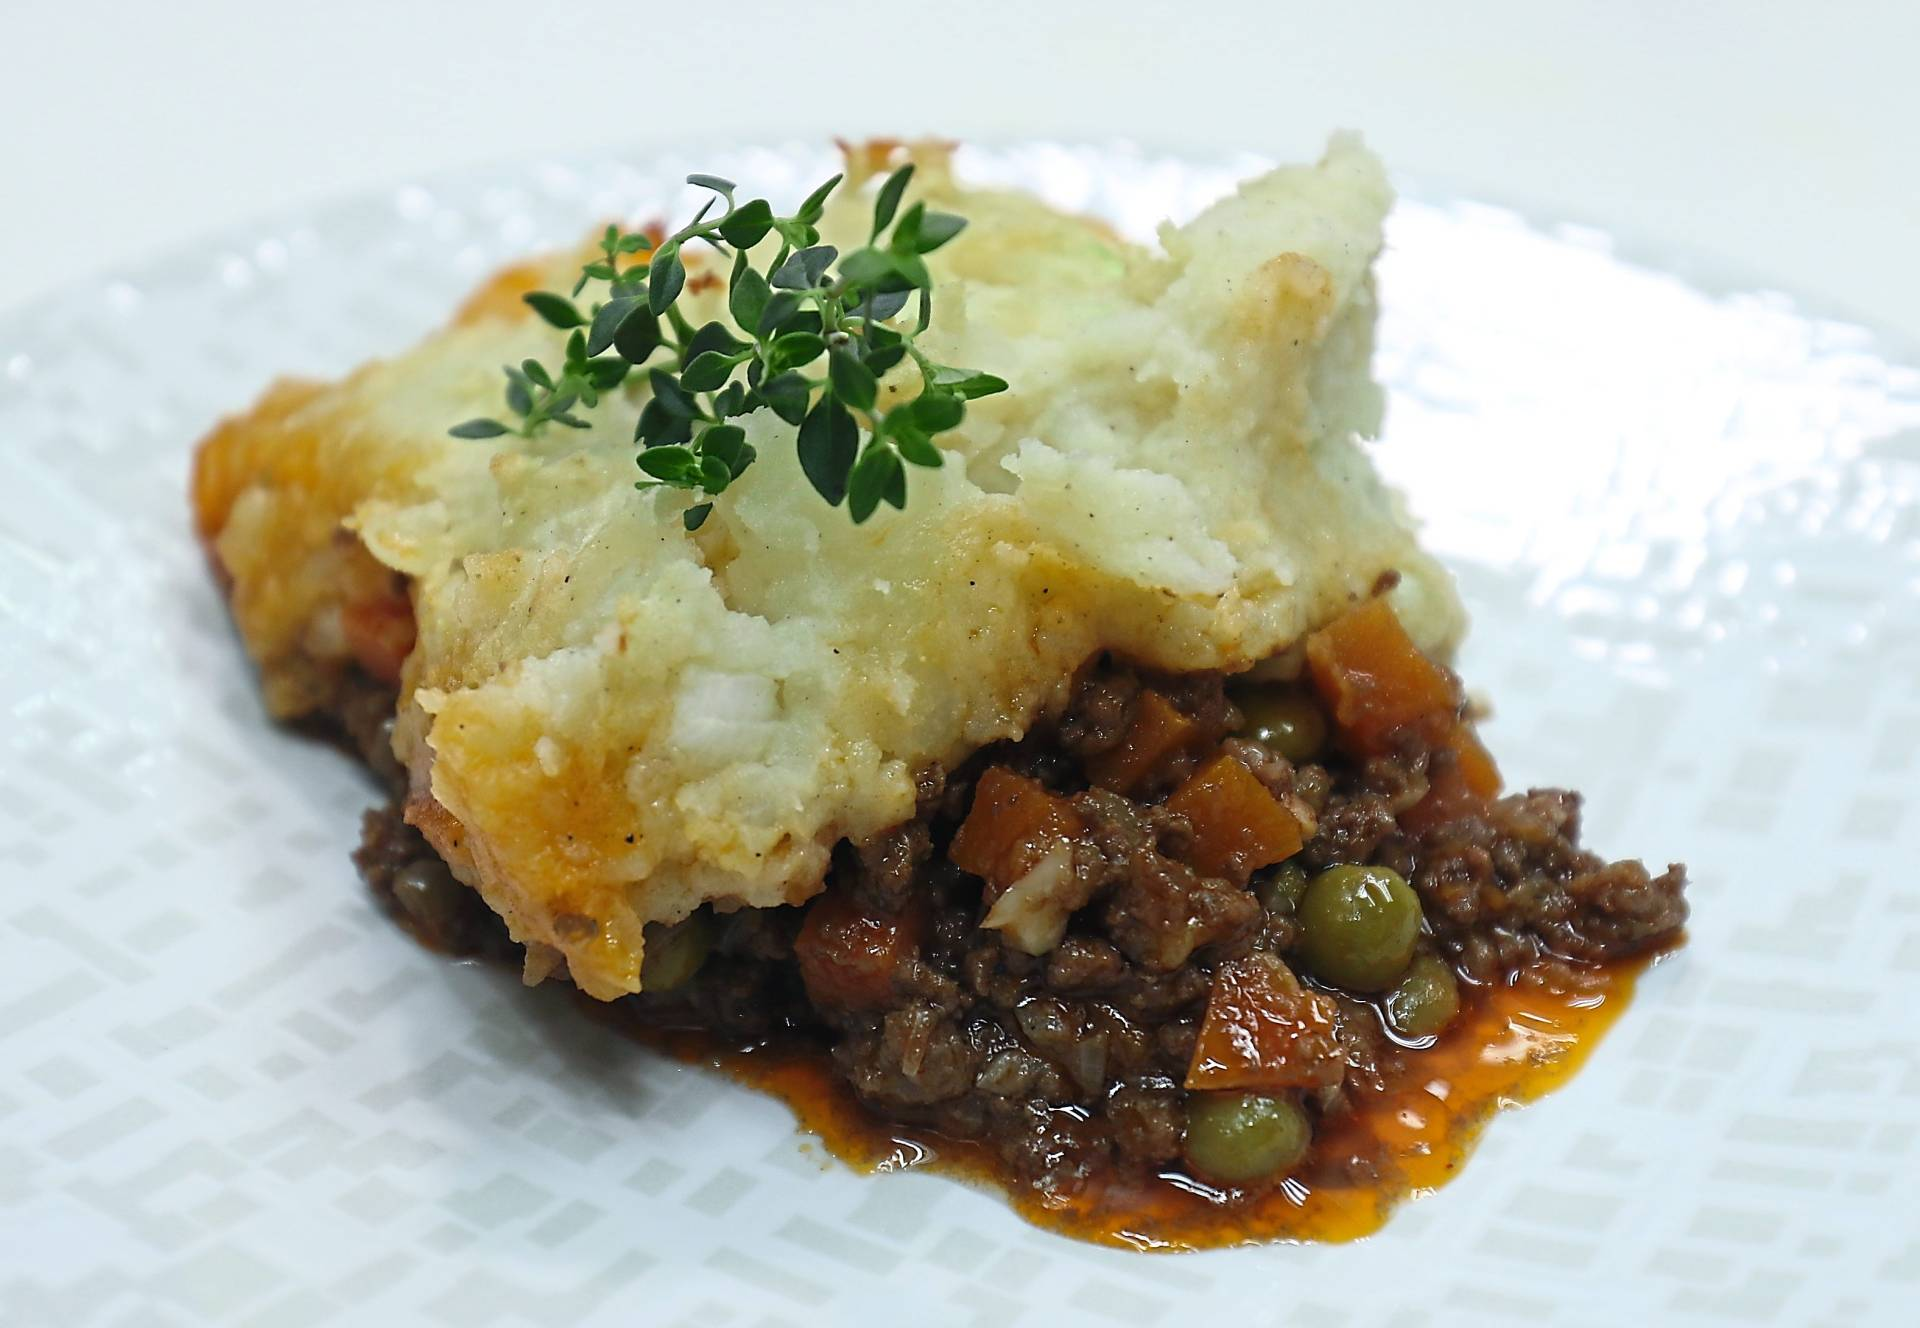 Shepherd's Pie can be a wholesome meal for any time of the day.